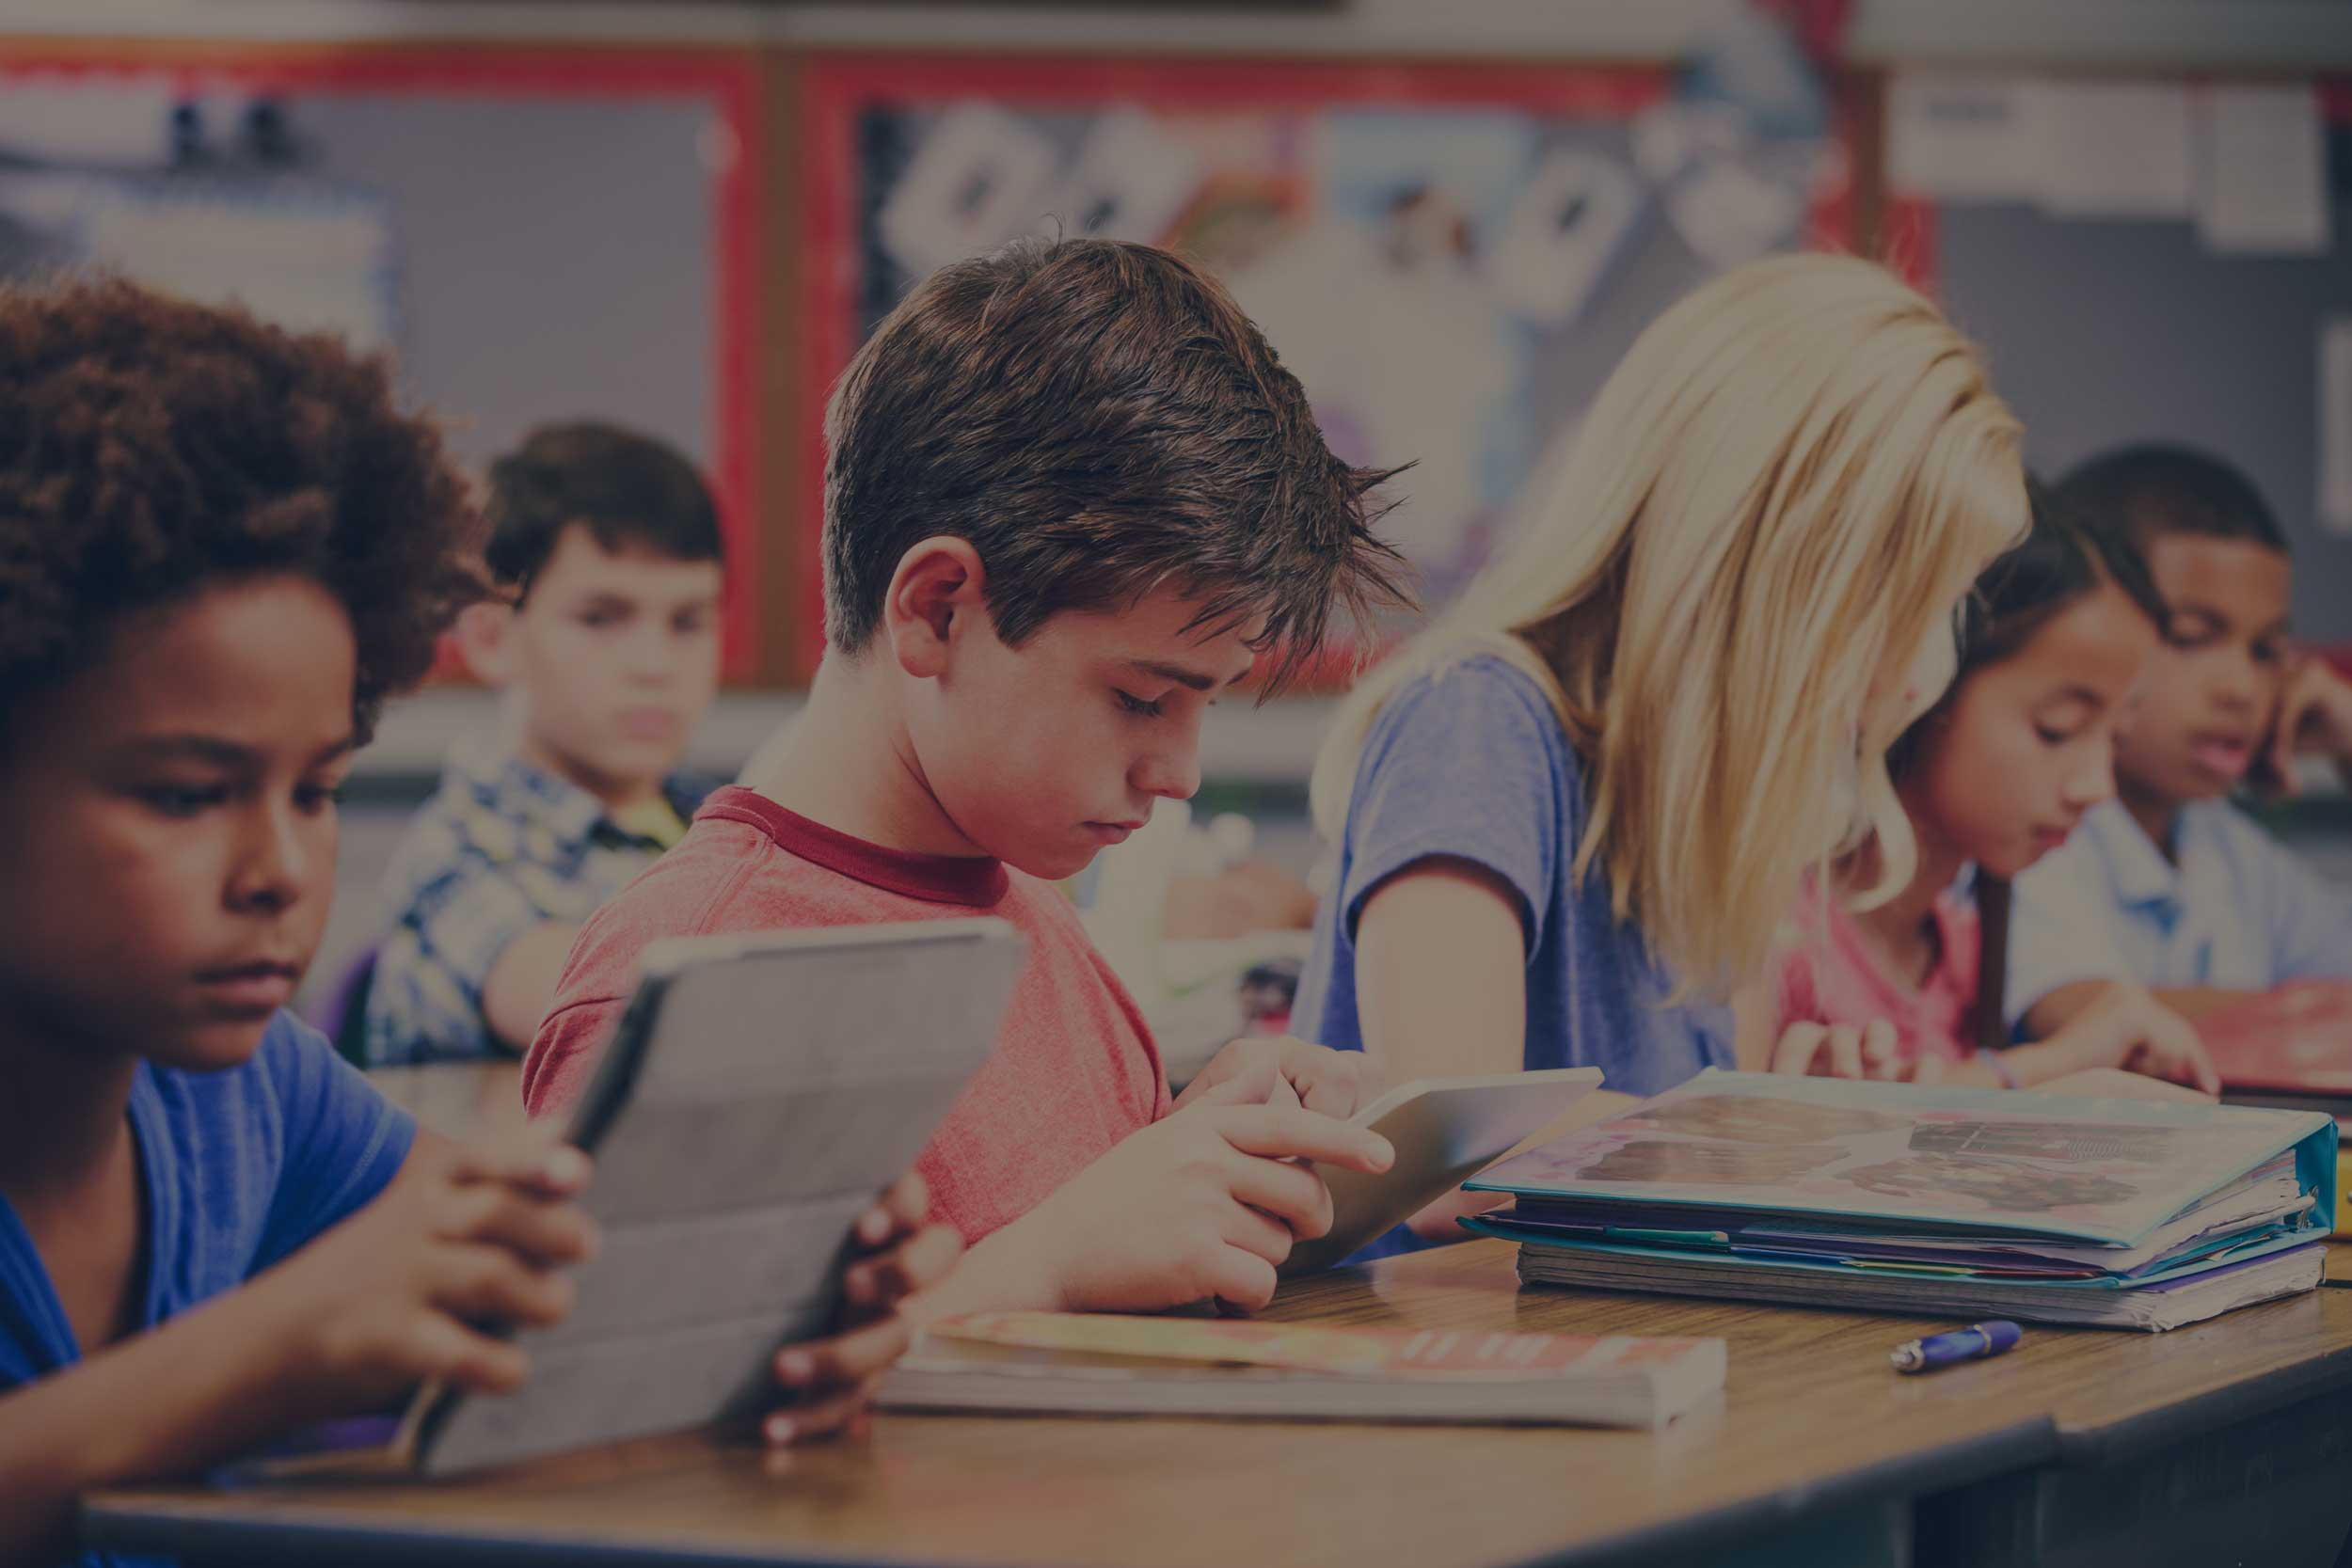 6 Potential Issues of Bringing Technology in the Classroom